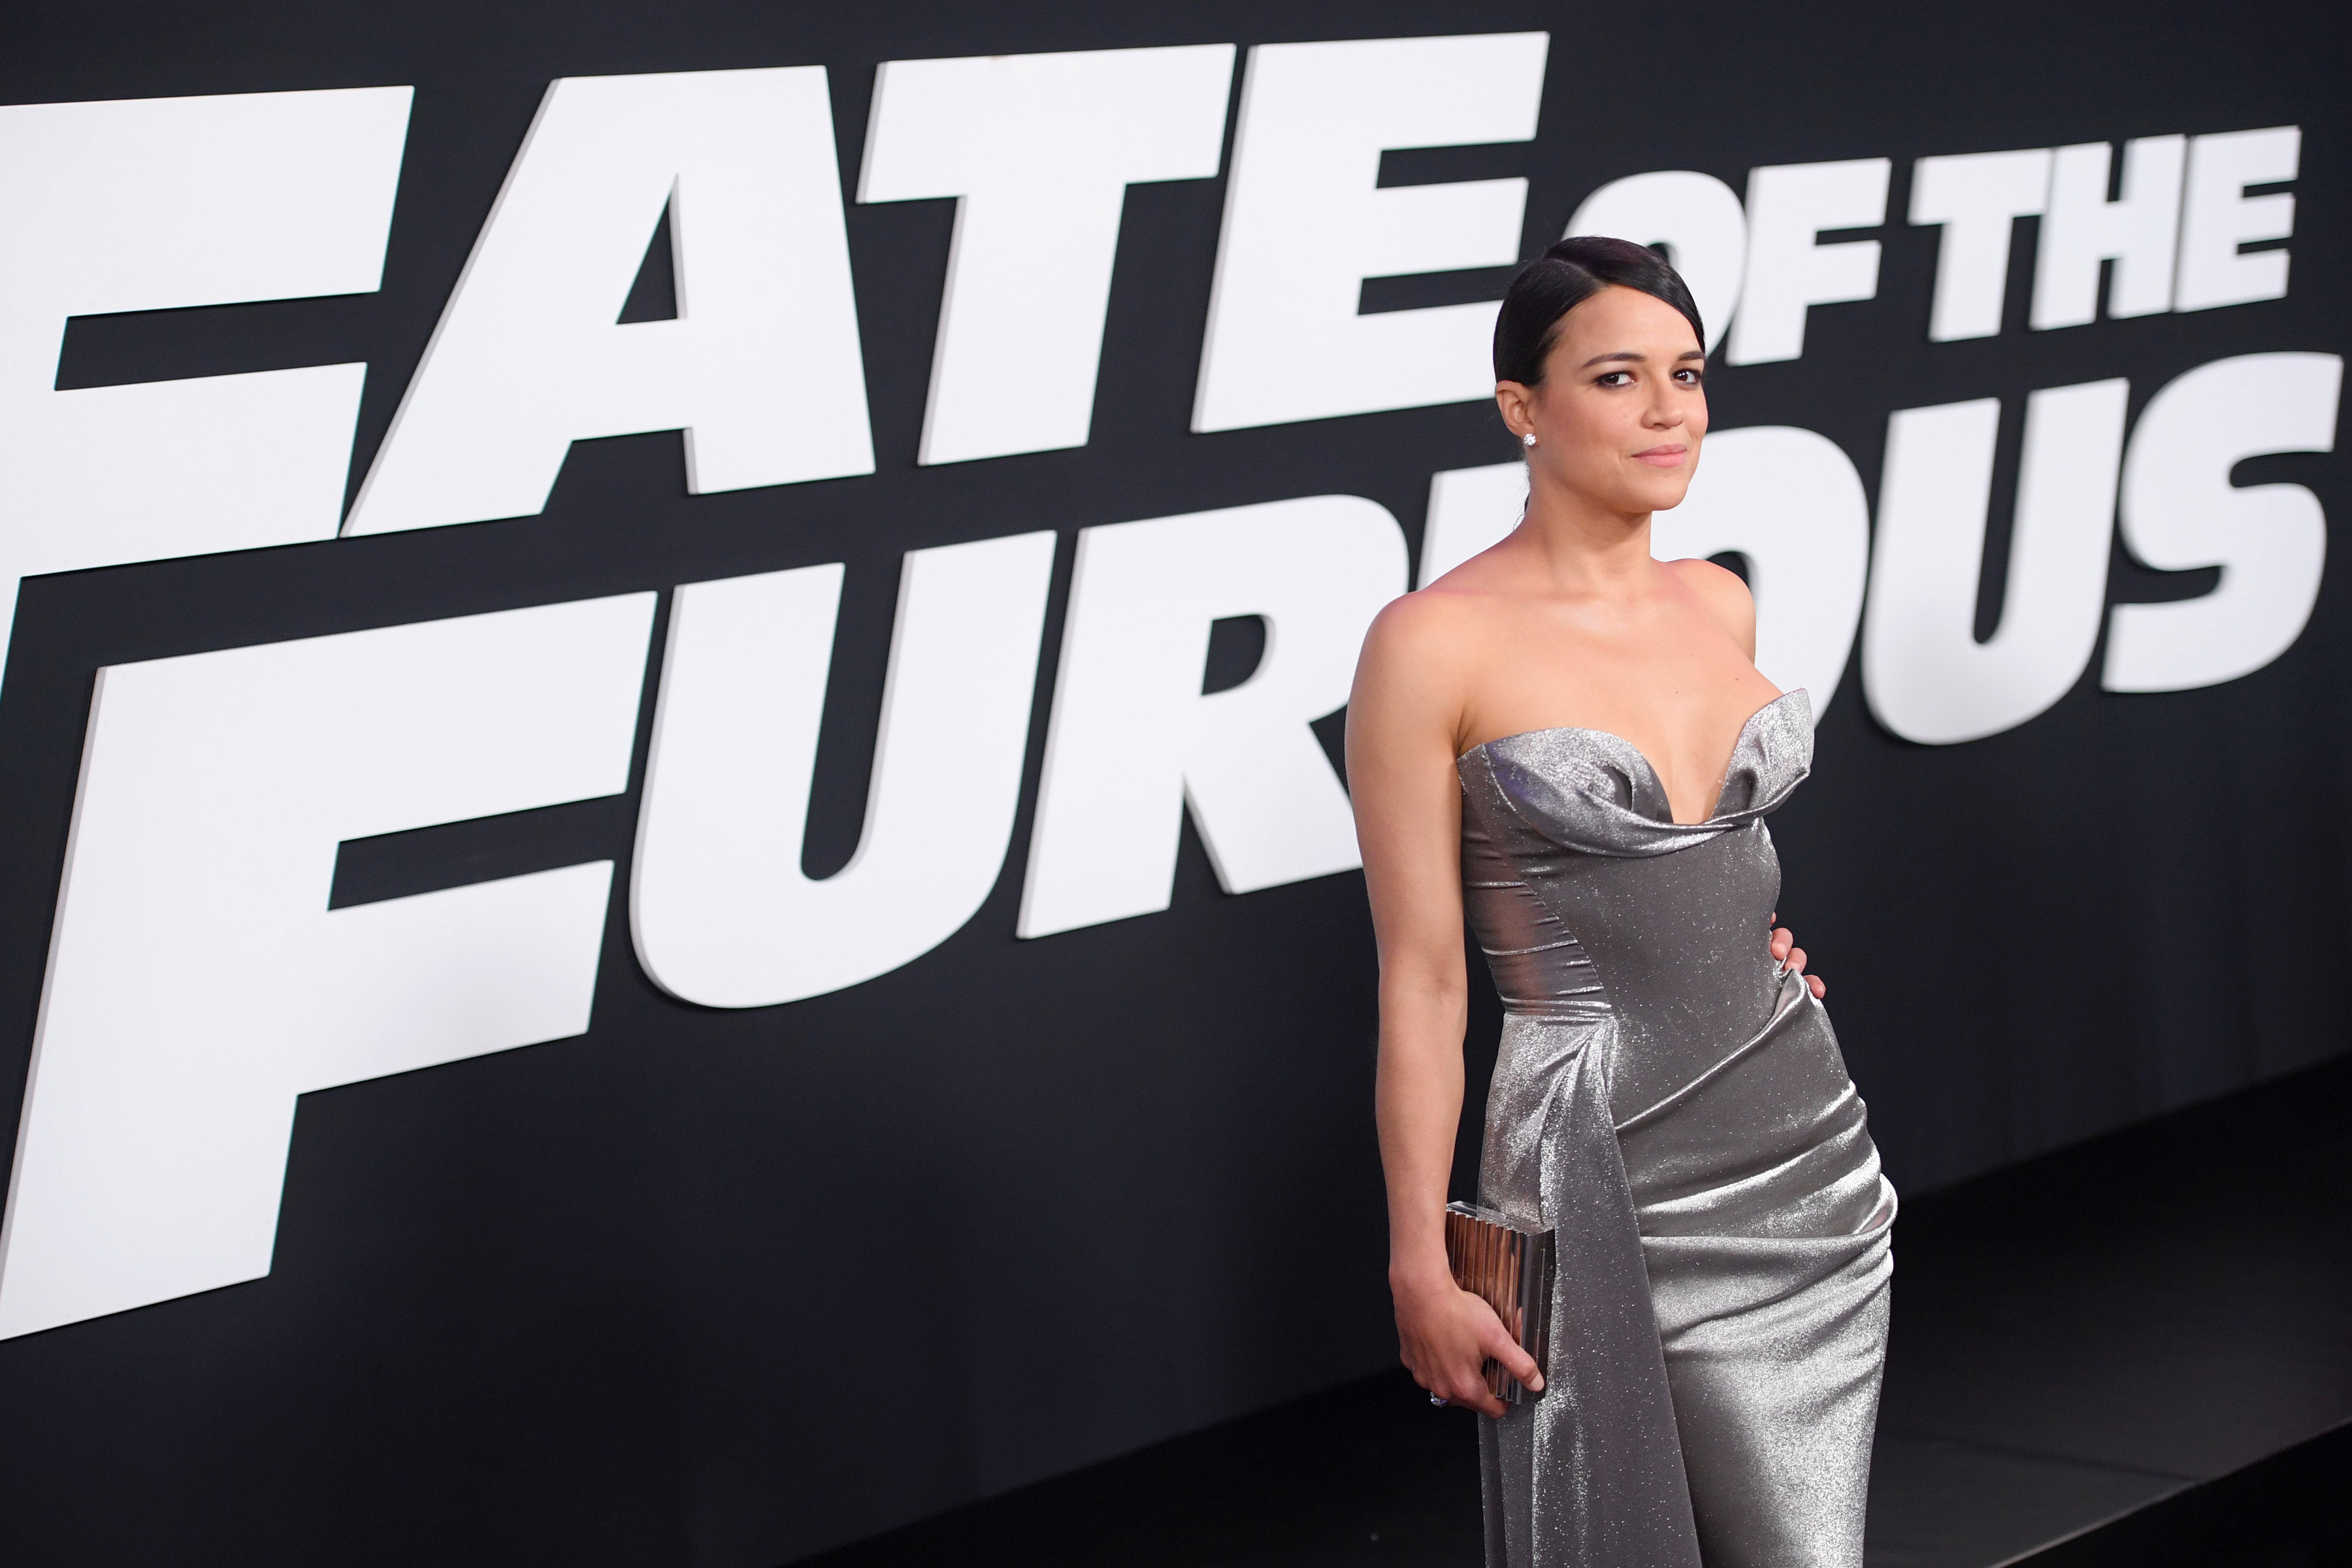 Michelle Rodriguez threatens to leave 'Fast and Furious' franchise over sexism